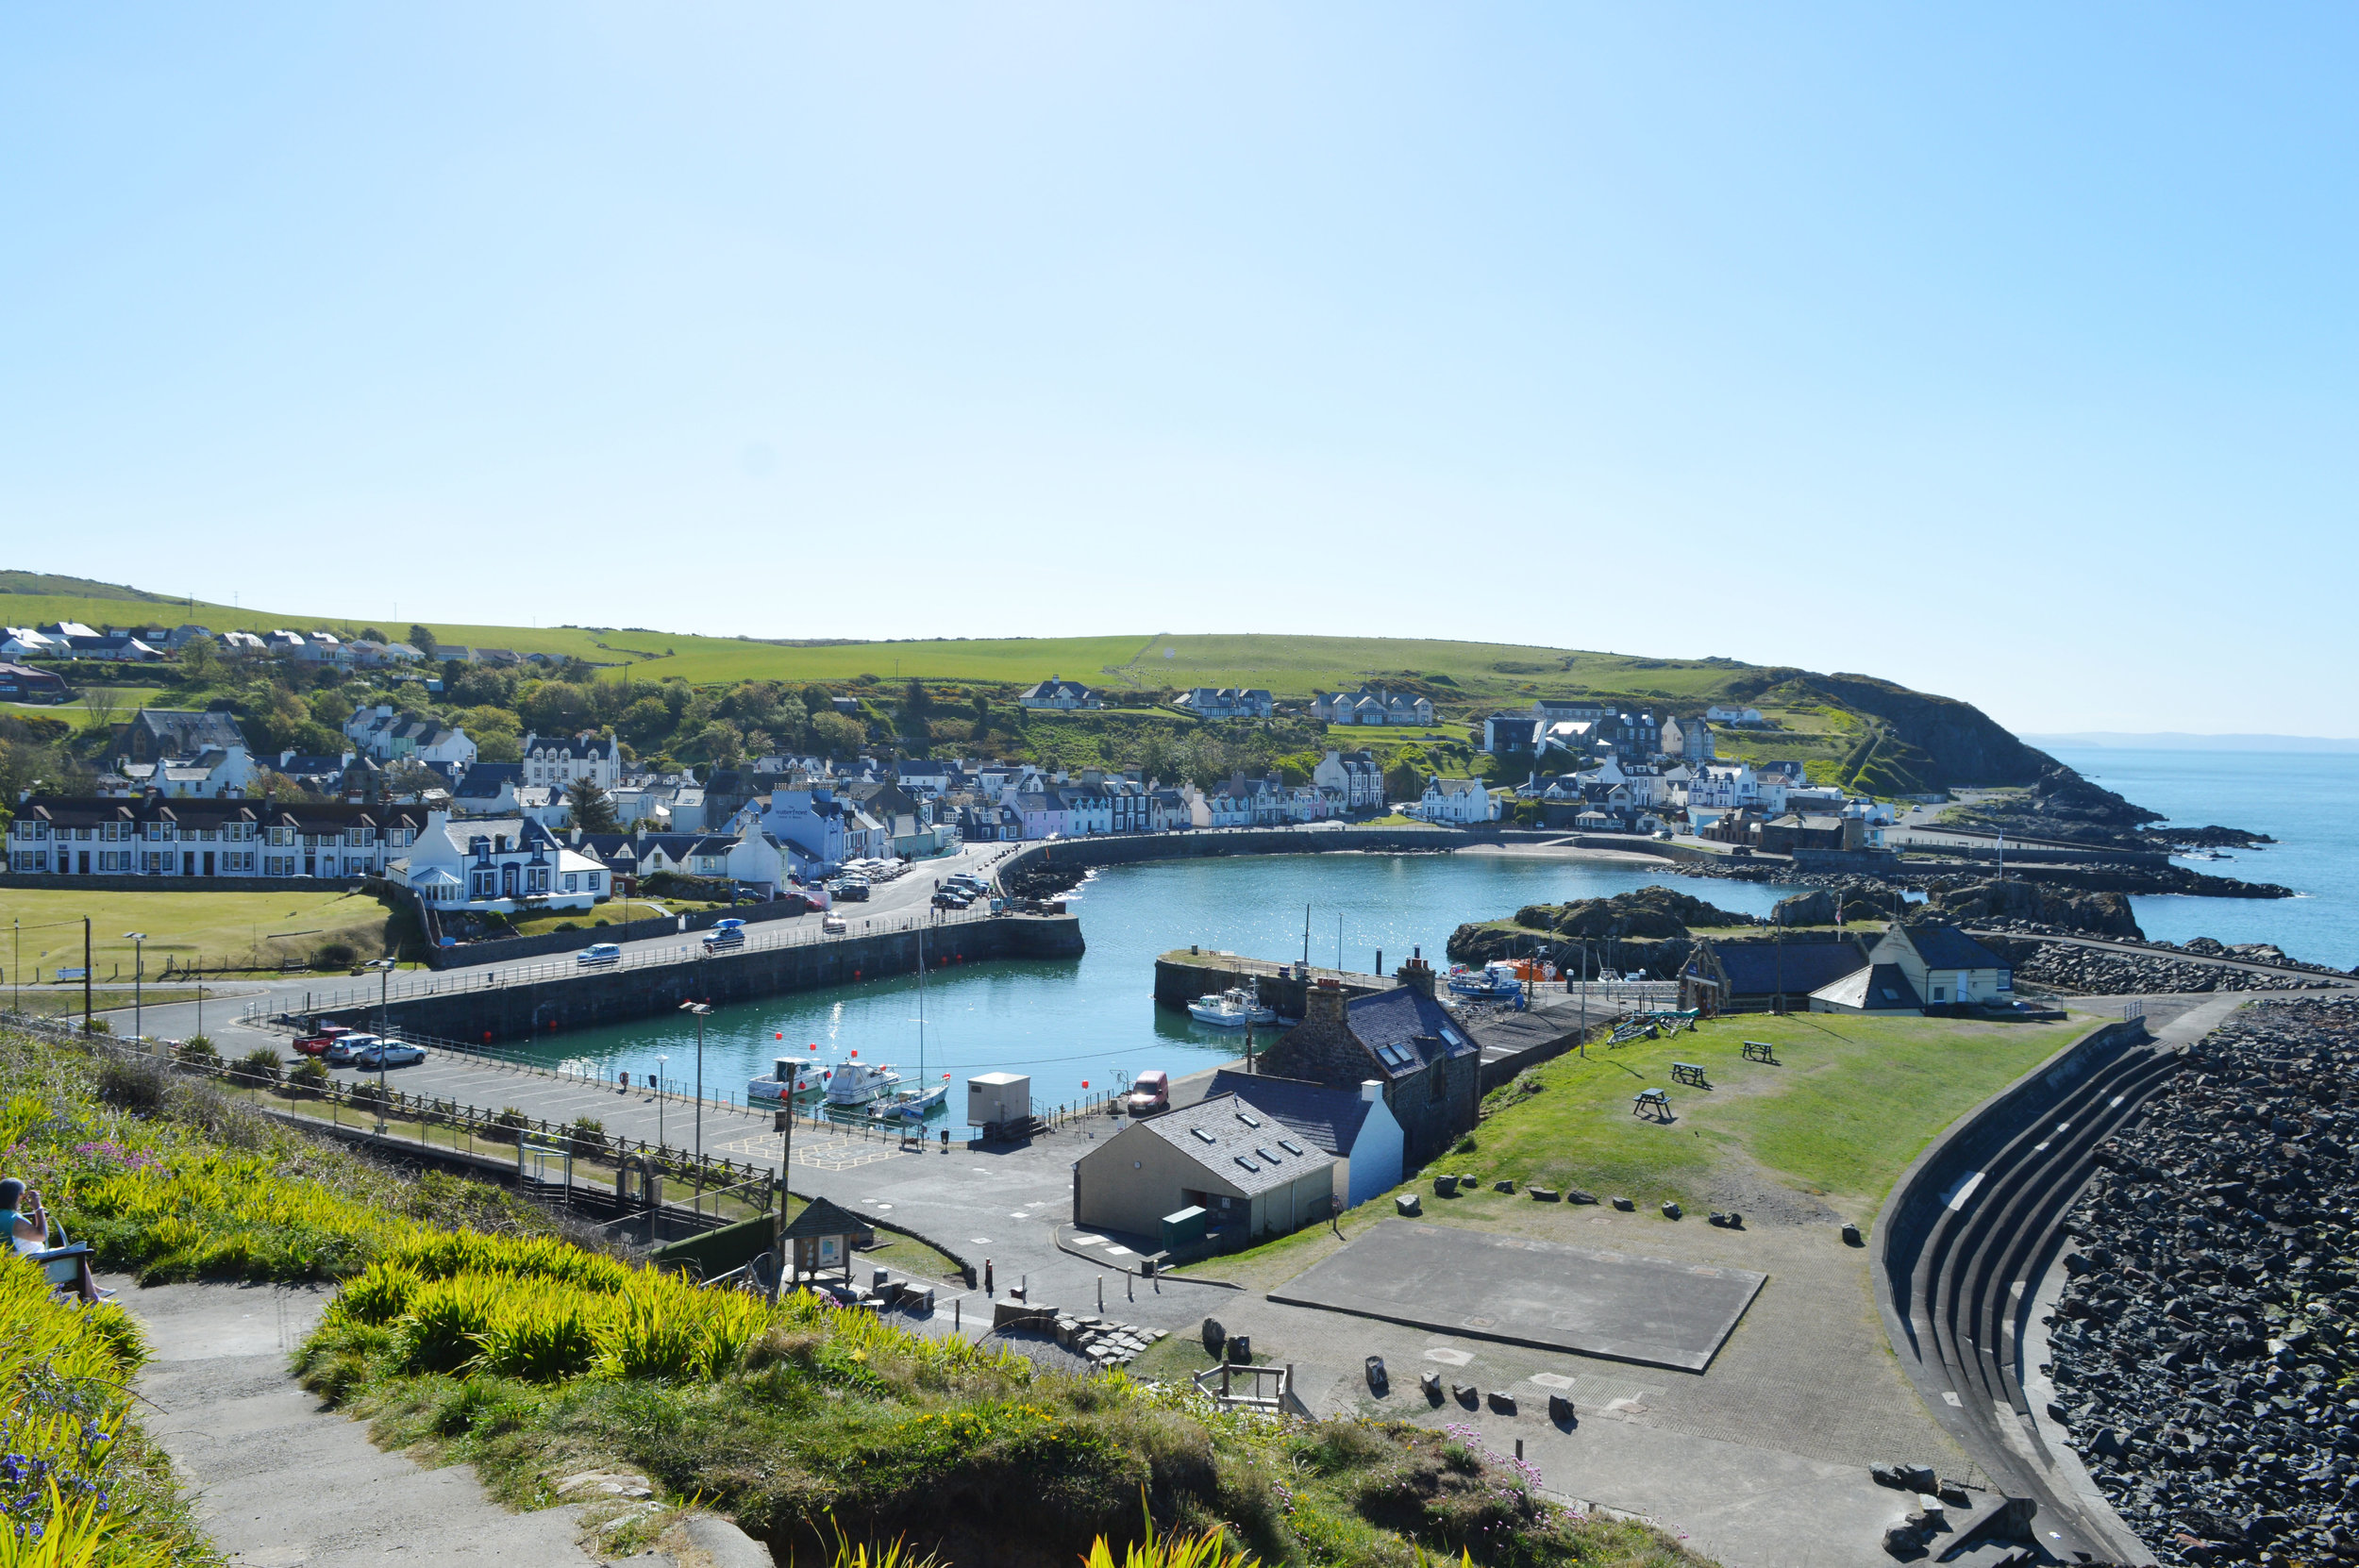 Things to do in Portpatrick Dumfries and galloway